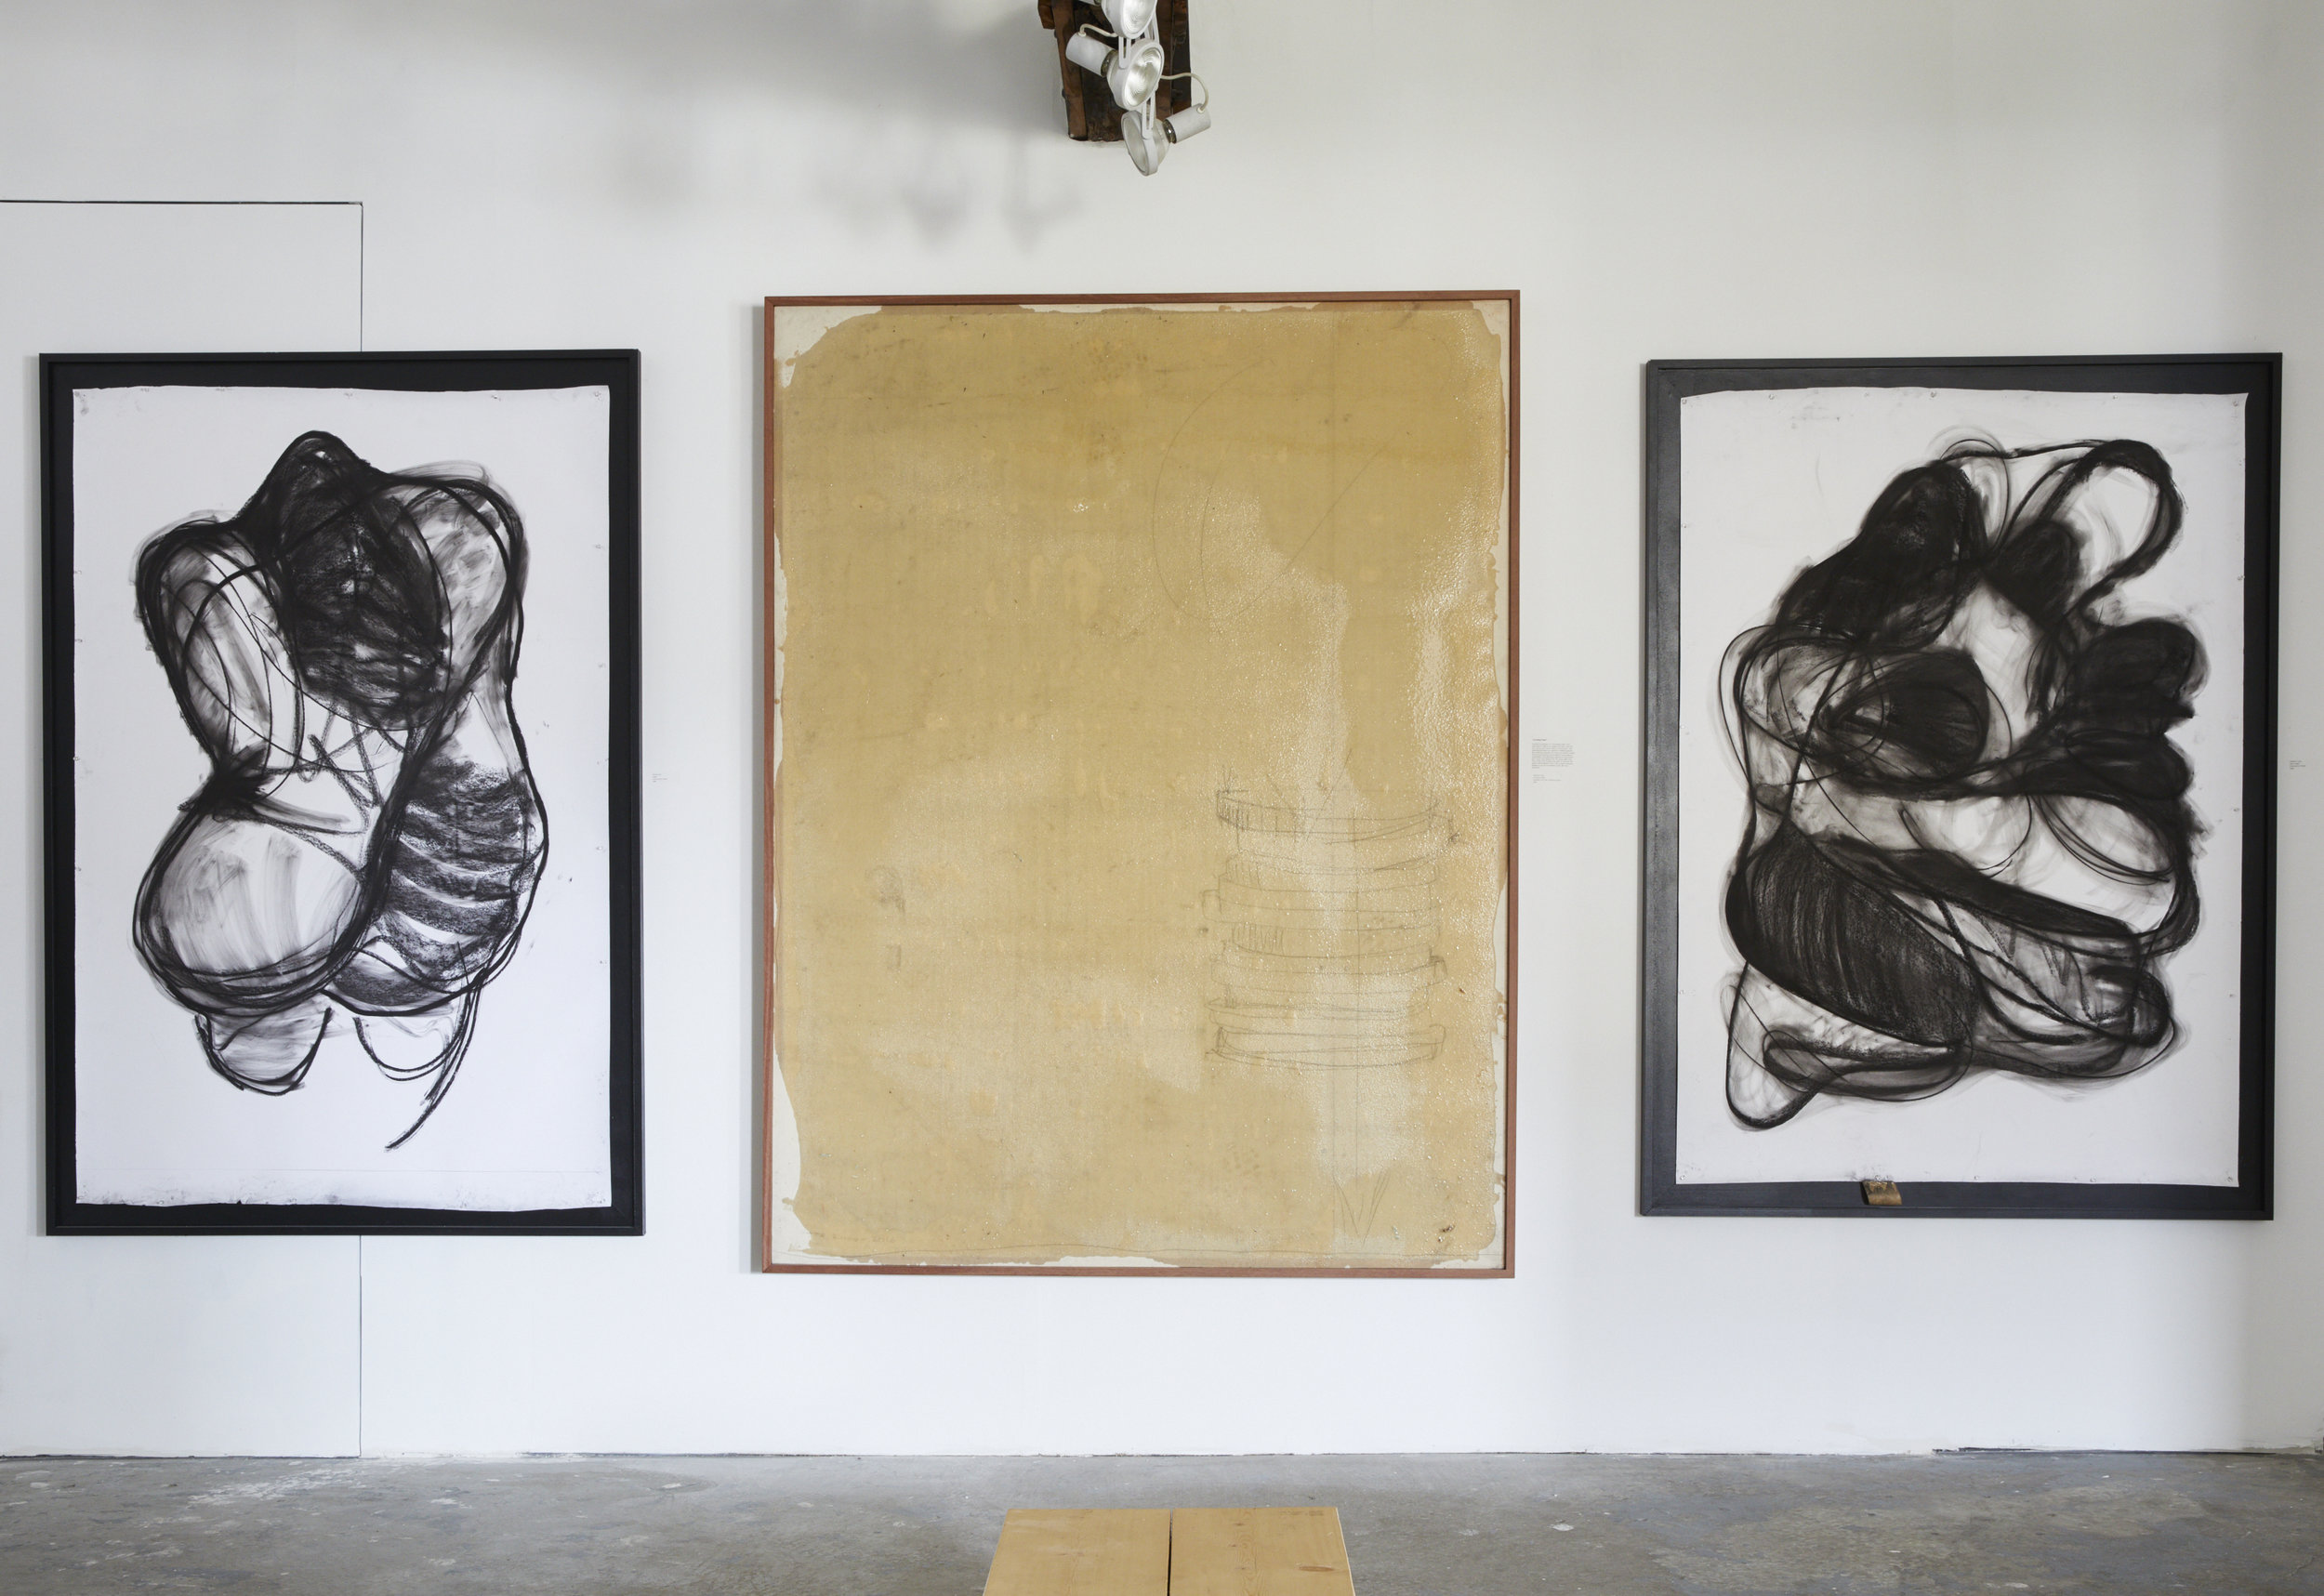 "Left to right: ""Helen,"" 2017 Charcoal on paper 78.5"" h x 53.5"" w  ""Counting Chips,"" 2000-2017 Graphite, grit, footprints, epoxy on canvas 85.5"" h x 65.5"" w  ""The Couple,"" 2017 Charcoal on paper 74,5"" h x 53.5"" w"